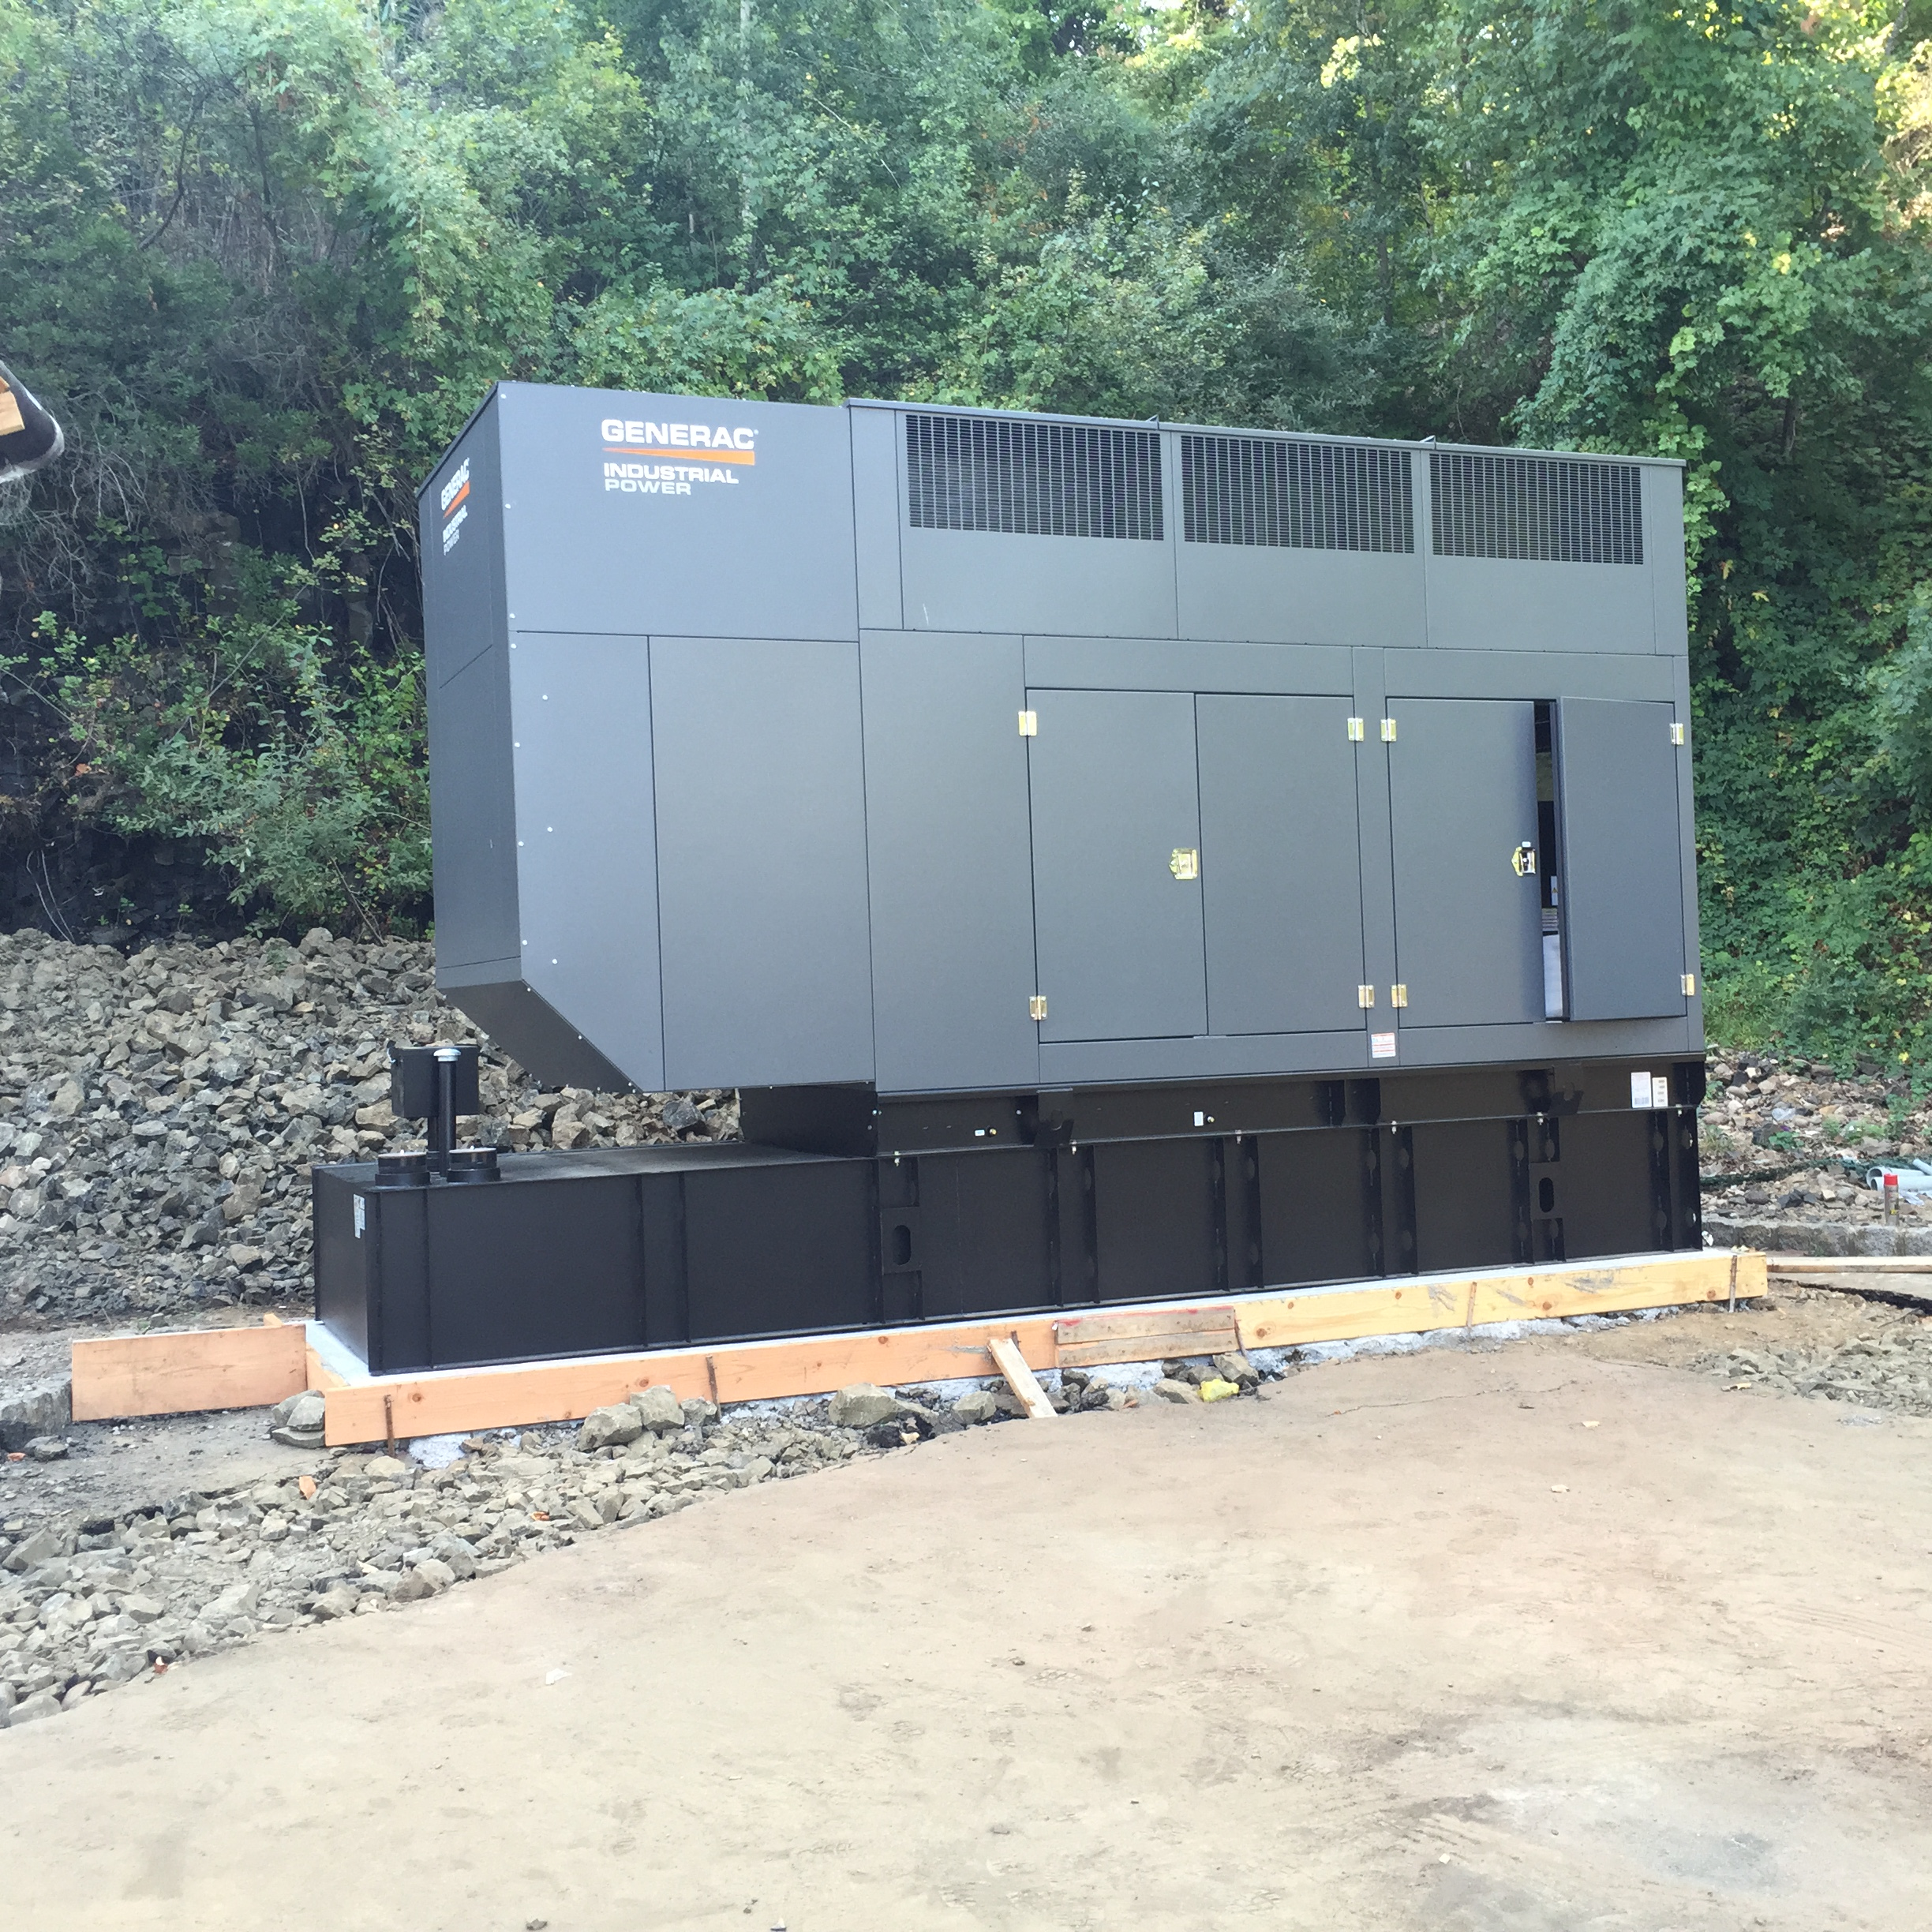 Installation of a 600kw Generac generator - Fairfield, NJ